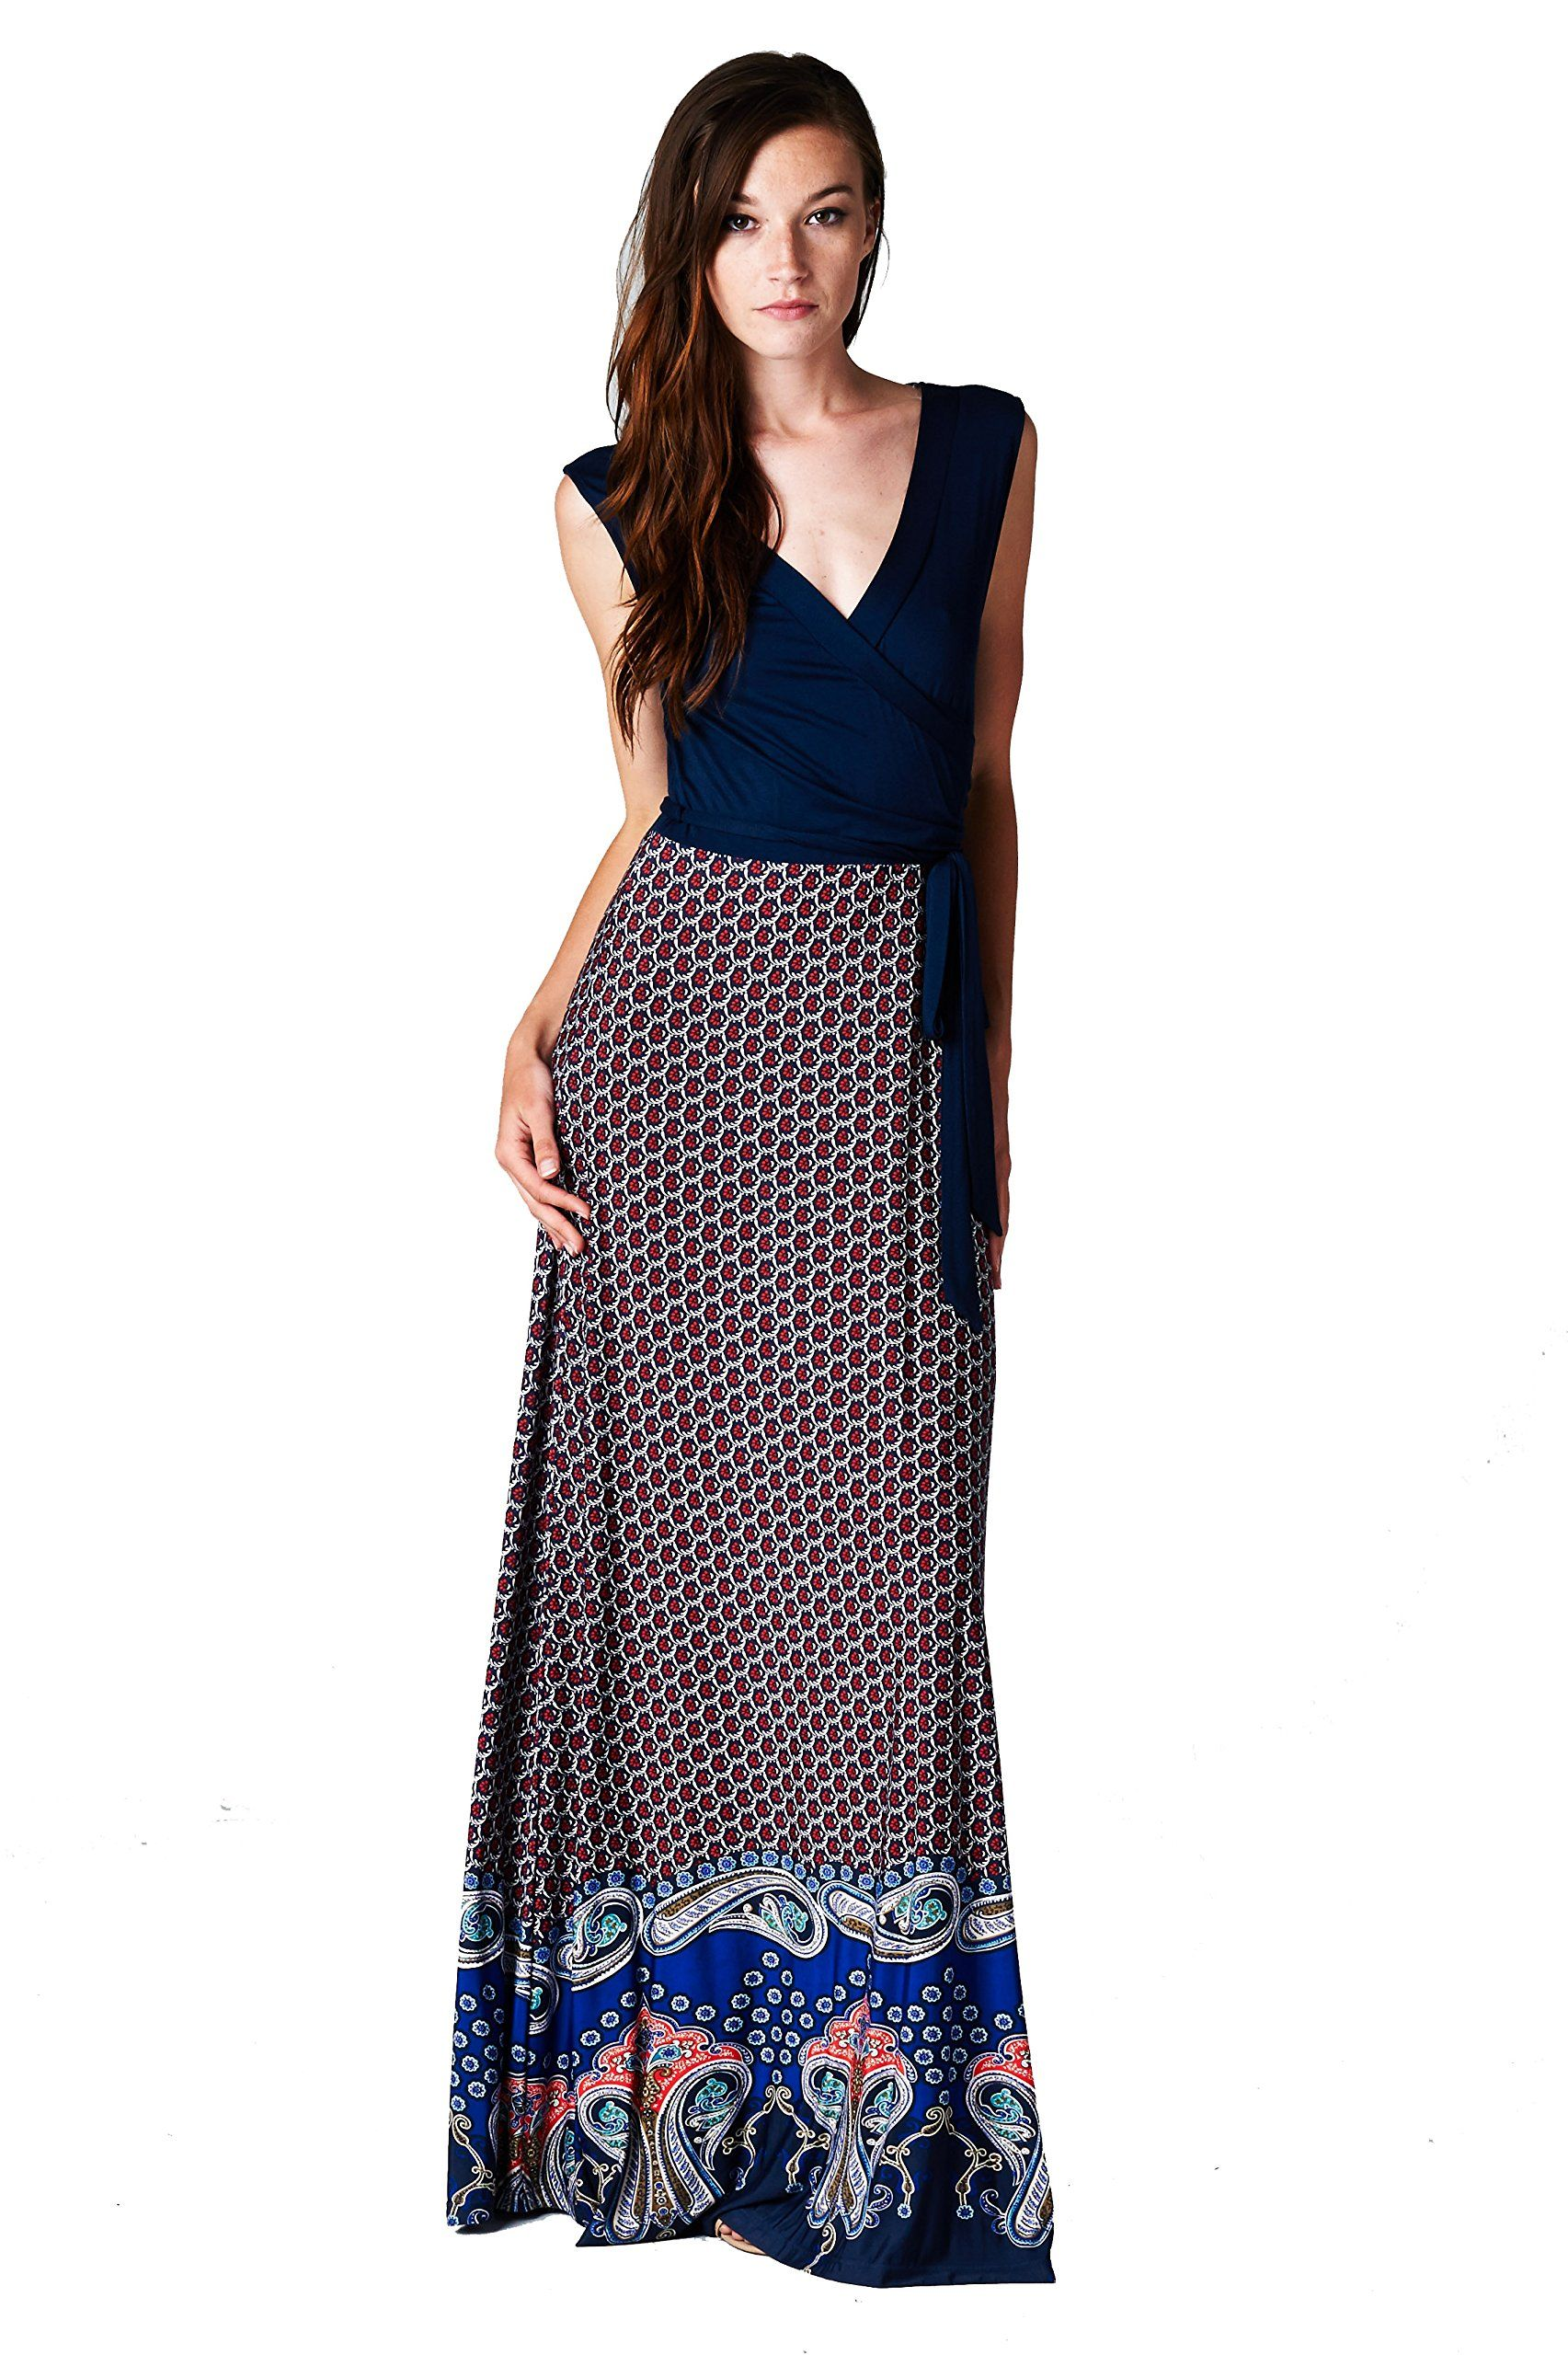 970a080f93b On Trend Claire Chevron Bohemian Dotted Print Color Block Sleeveless  Surplice Long Maxi Dress (Small